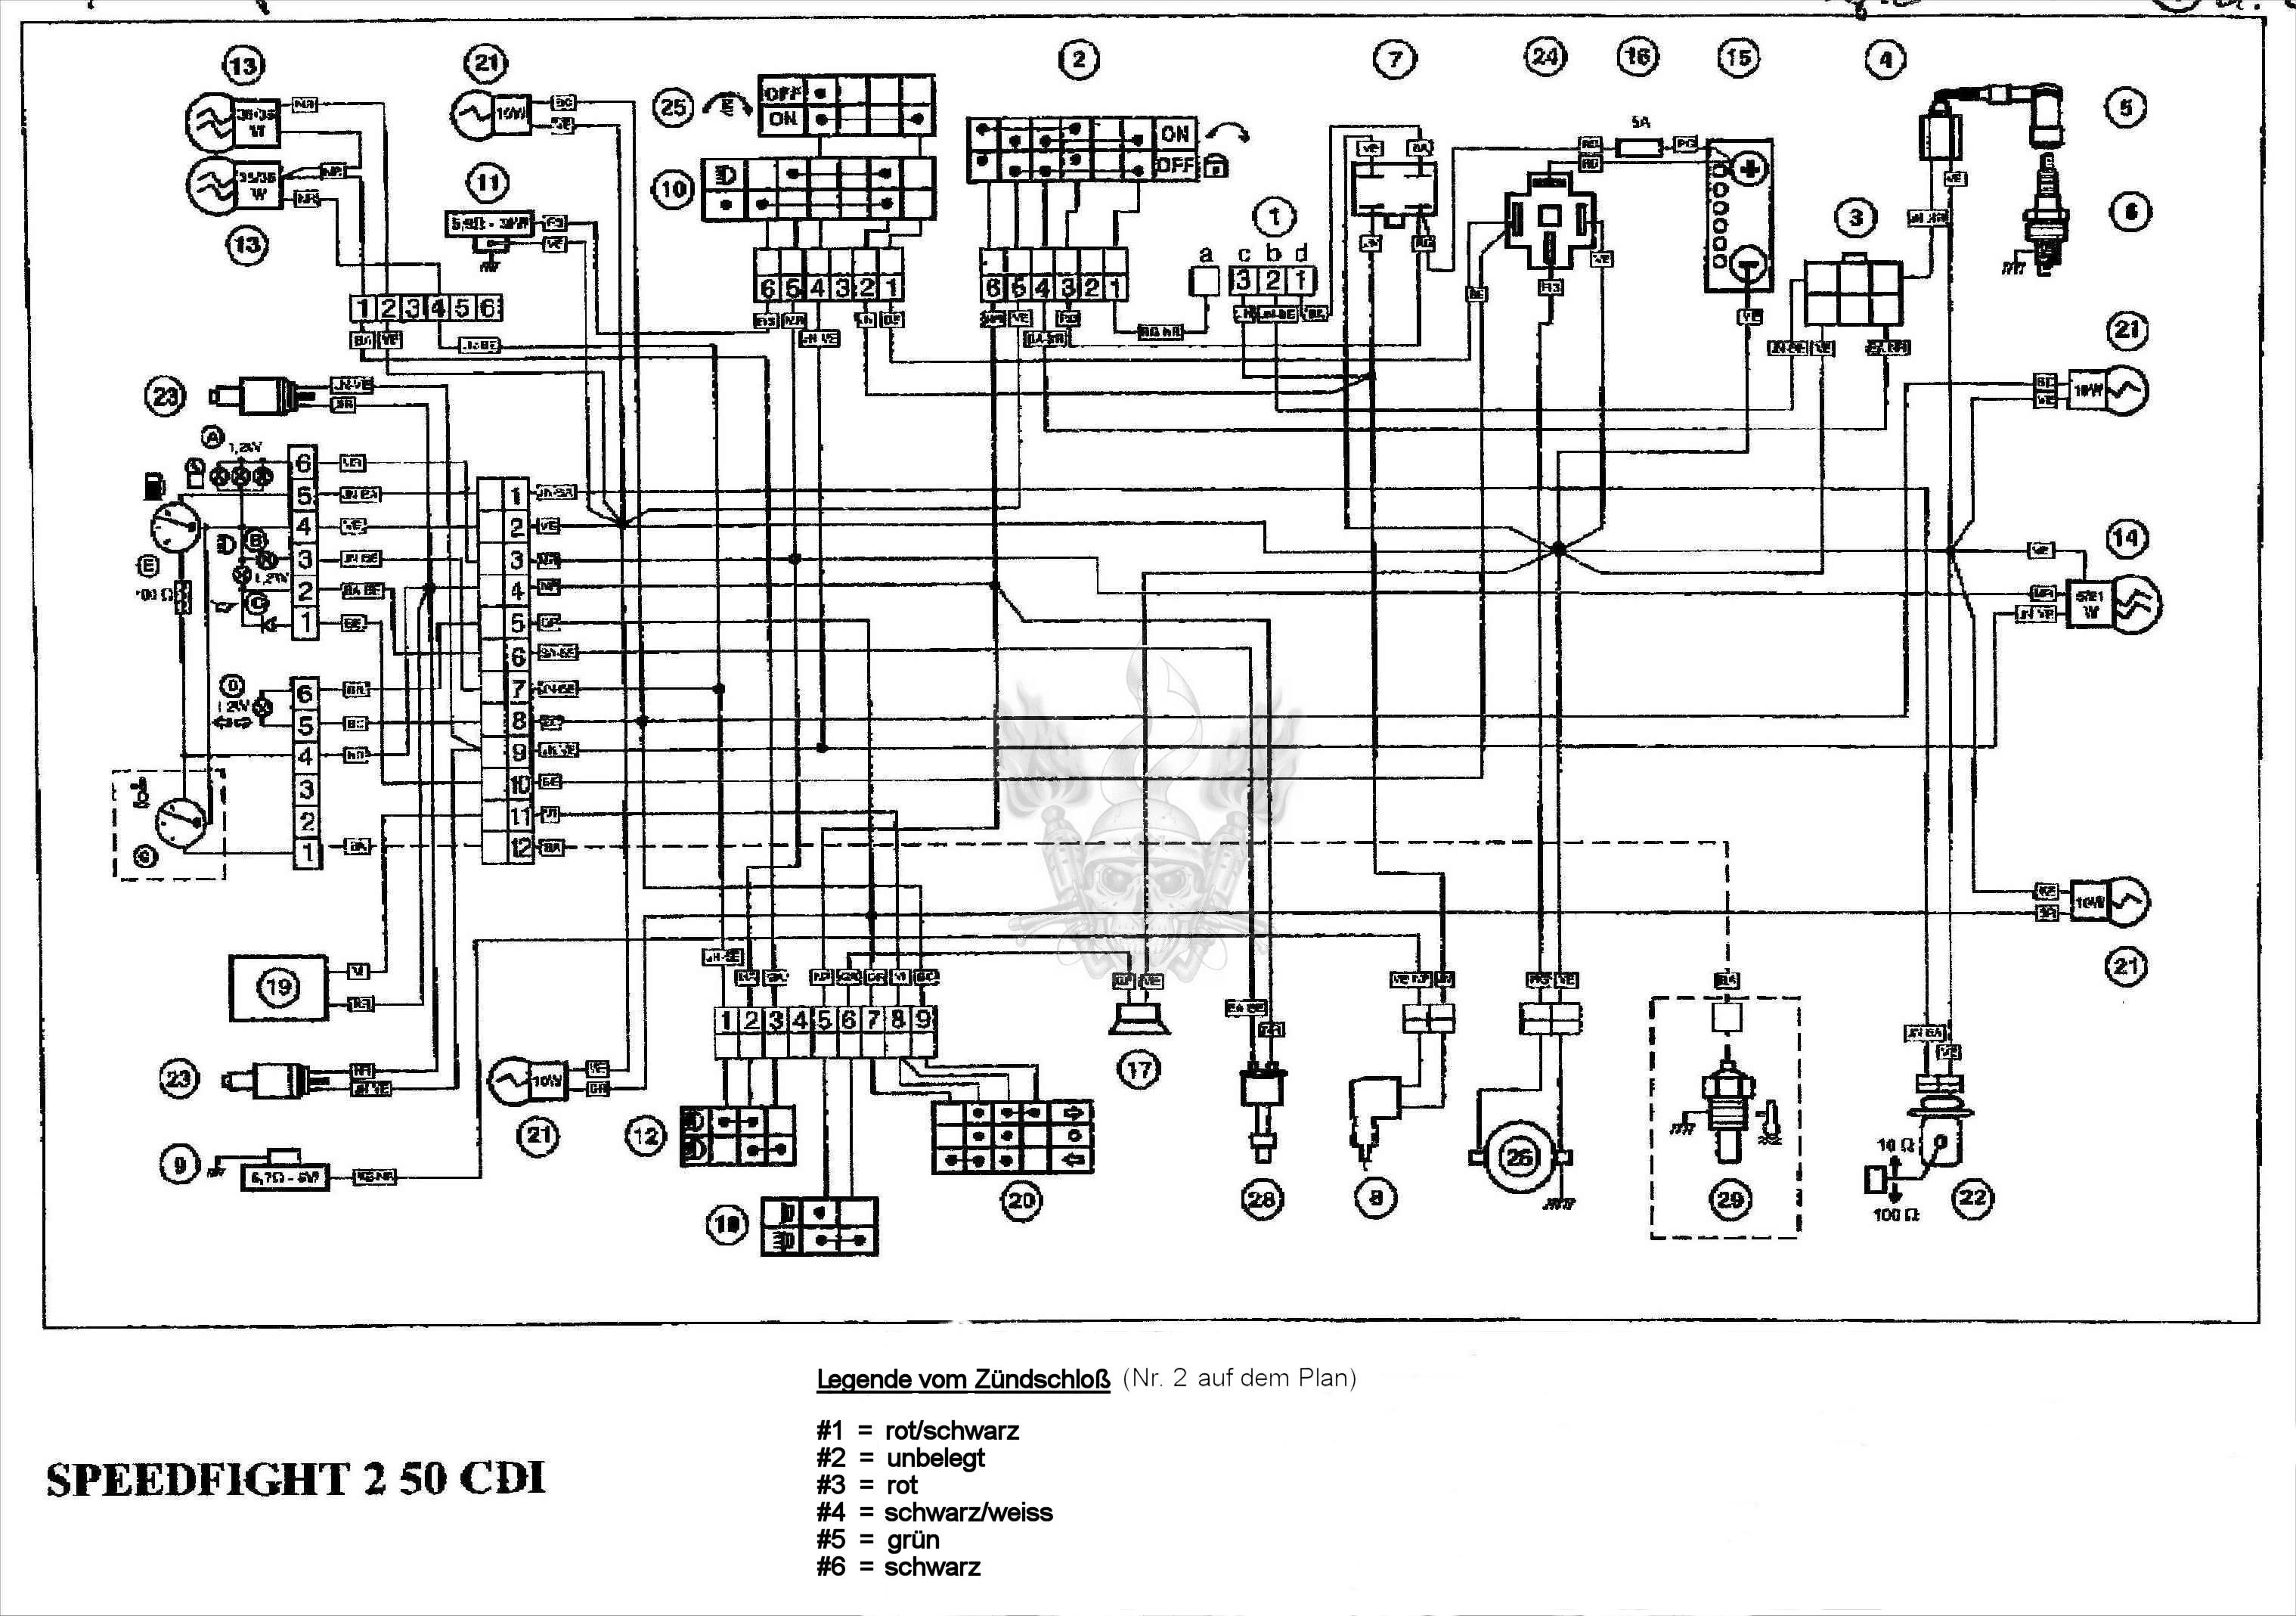 Ducati Ignition Module Wiring Diagram Circuit Diagrams Wire Schematics Revadap Besides Suzukivx800transistorizedignitionsystemwiringdiagram Moreover Rotax Dcdi Finished Lrg Likewise Additionally